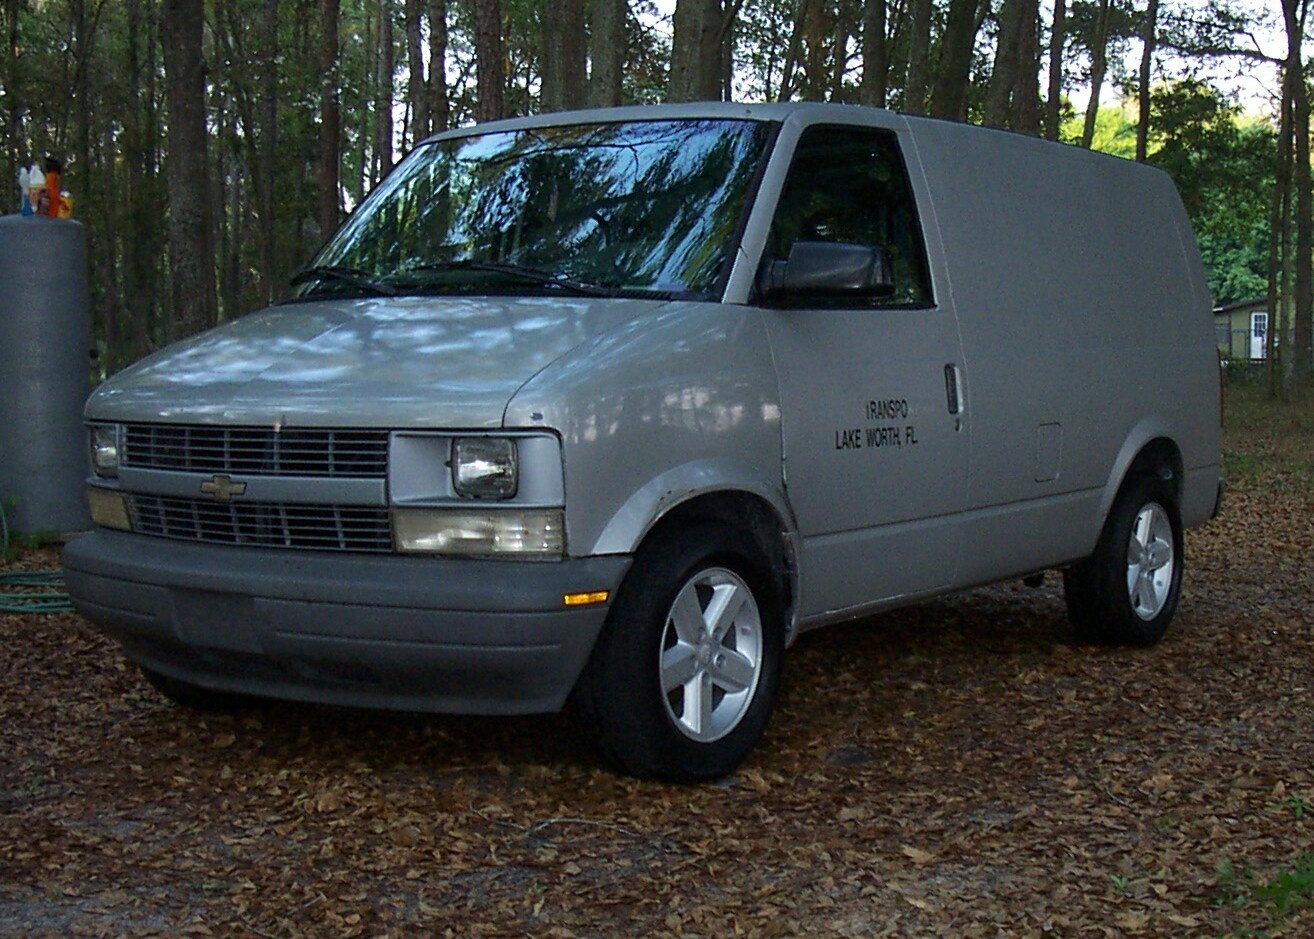 All Chevy 95 chevy astro van : Chevrolet Astro Cargo Van Questions - Hypertech or Jet Performance ...